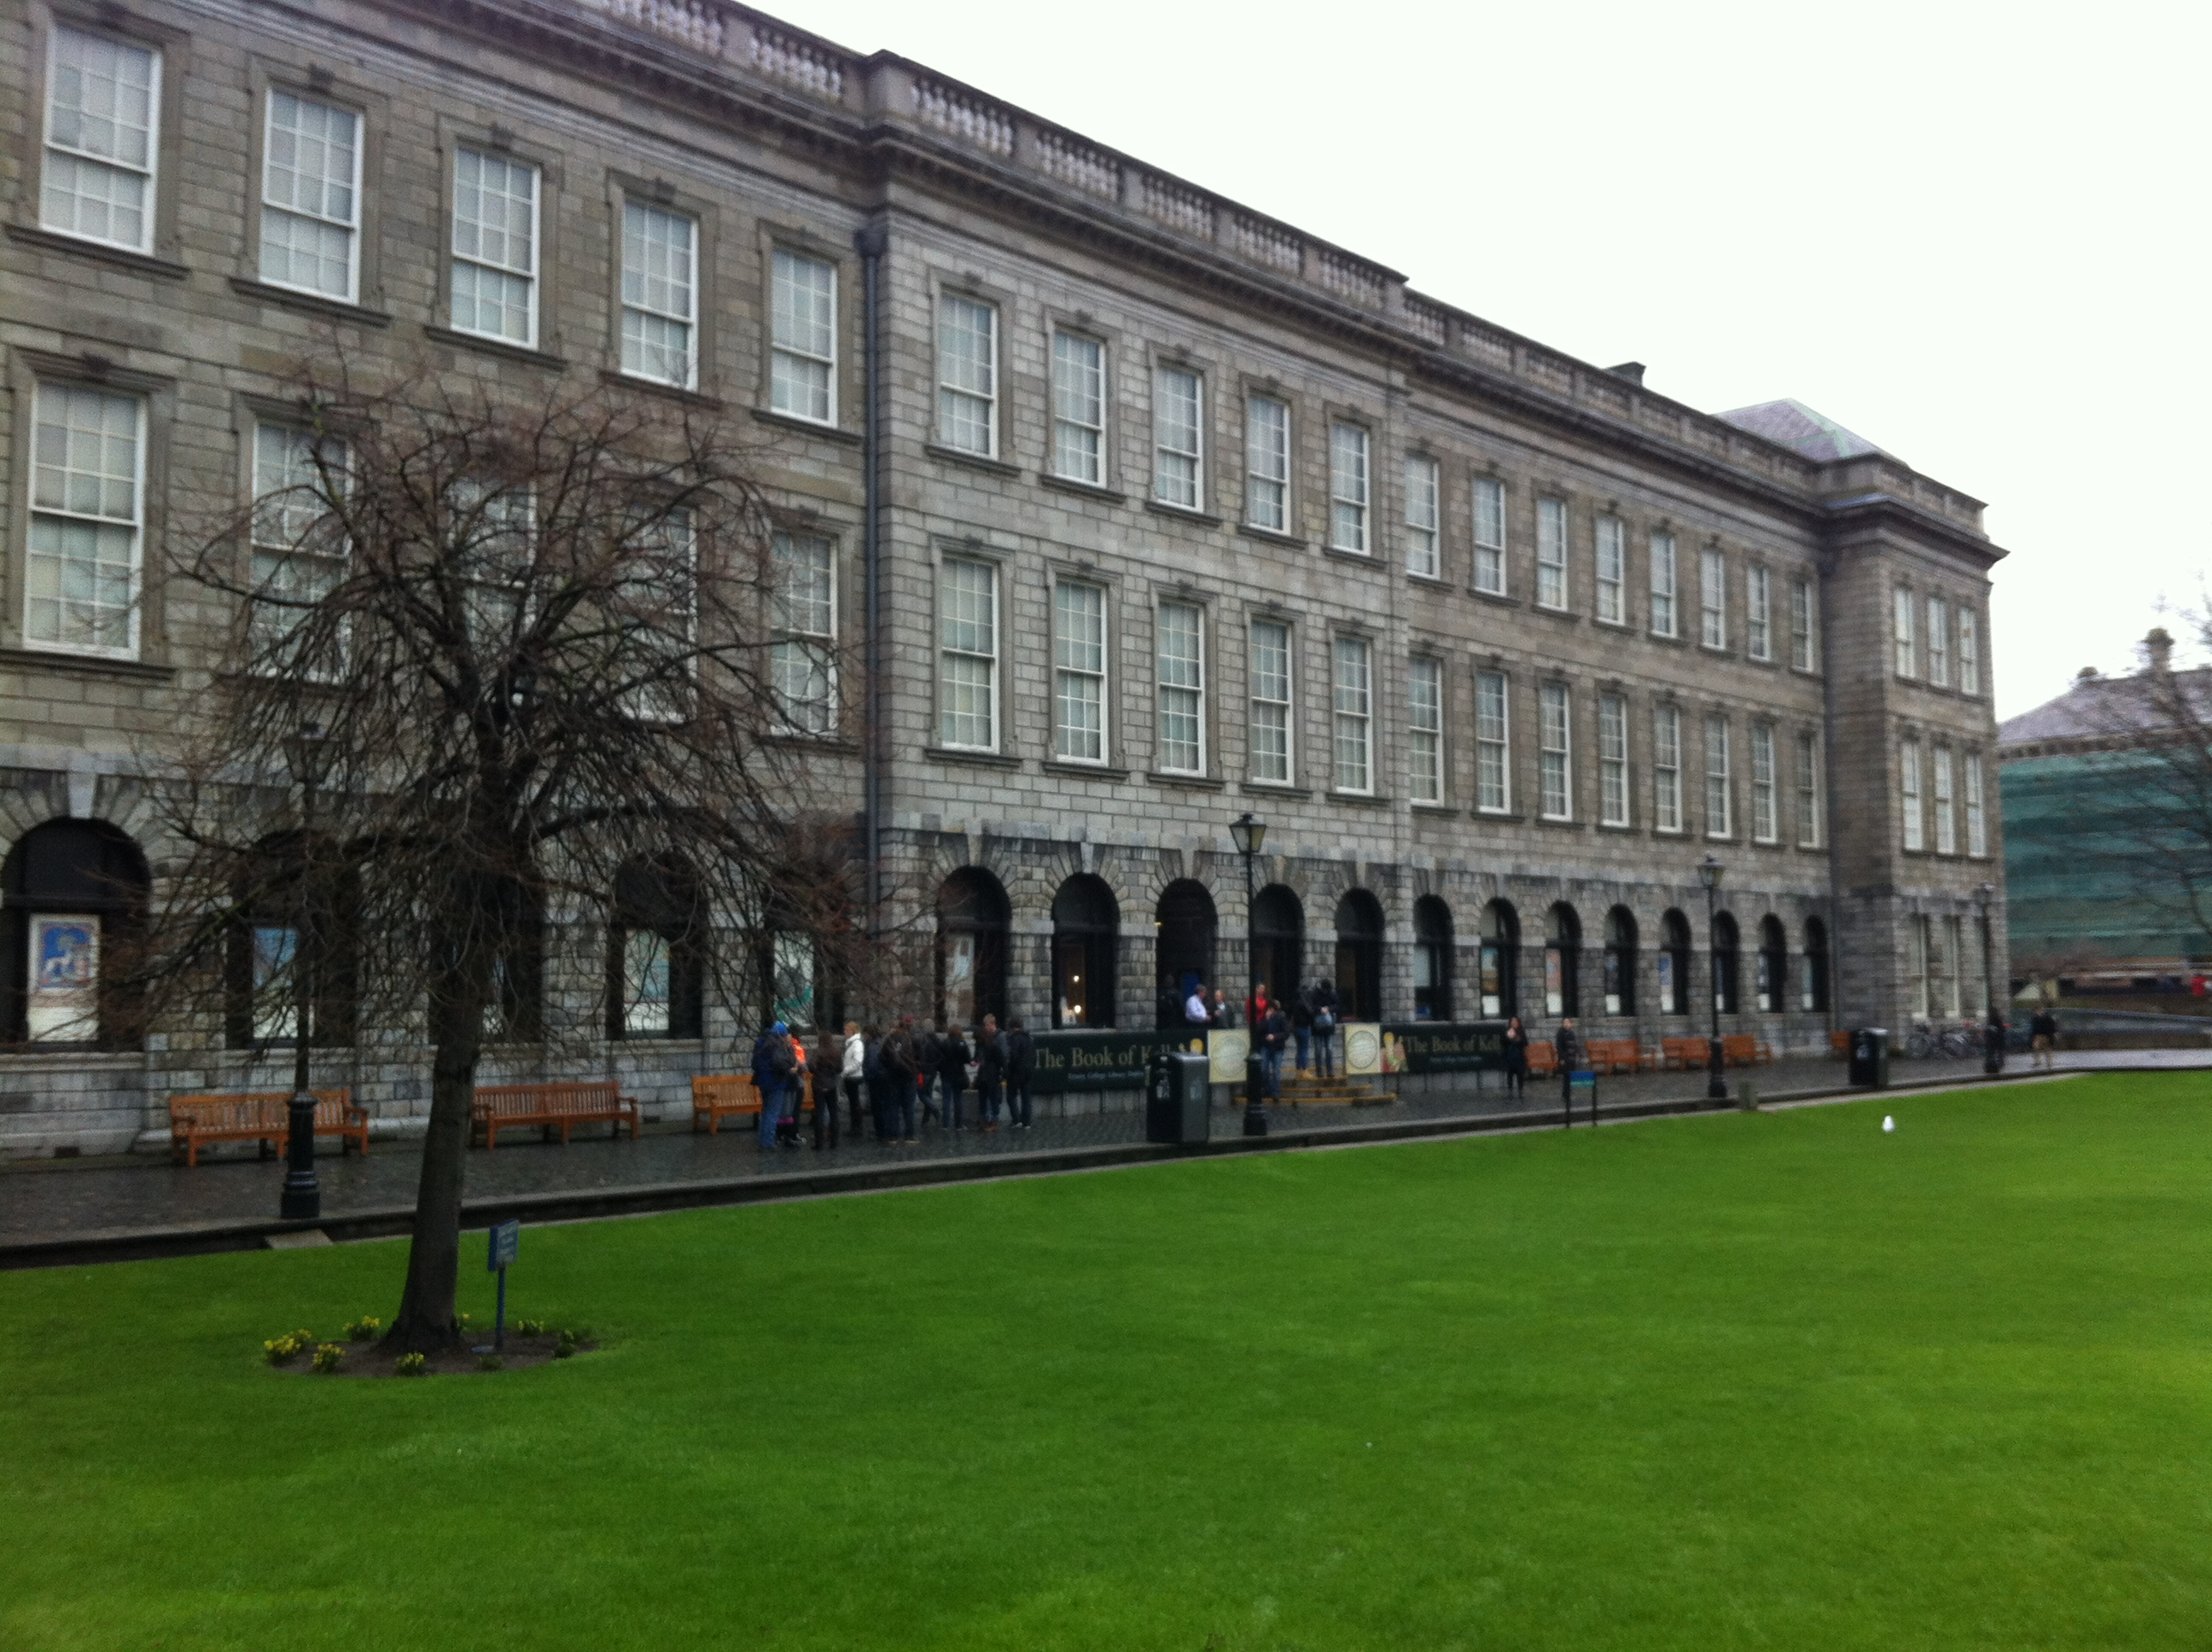 trinity college dublin thesis binding Welcome to the thesis centre the bookbinders of choice in ireland est 1989 why choose us we've offered the highest quality thesis and dissertation binding in ireland for almost 30.